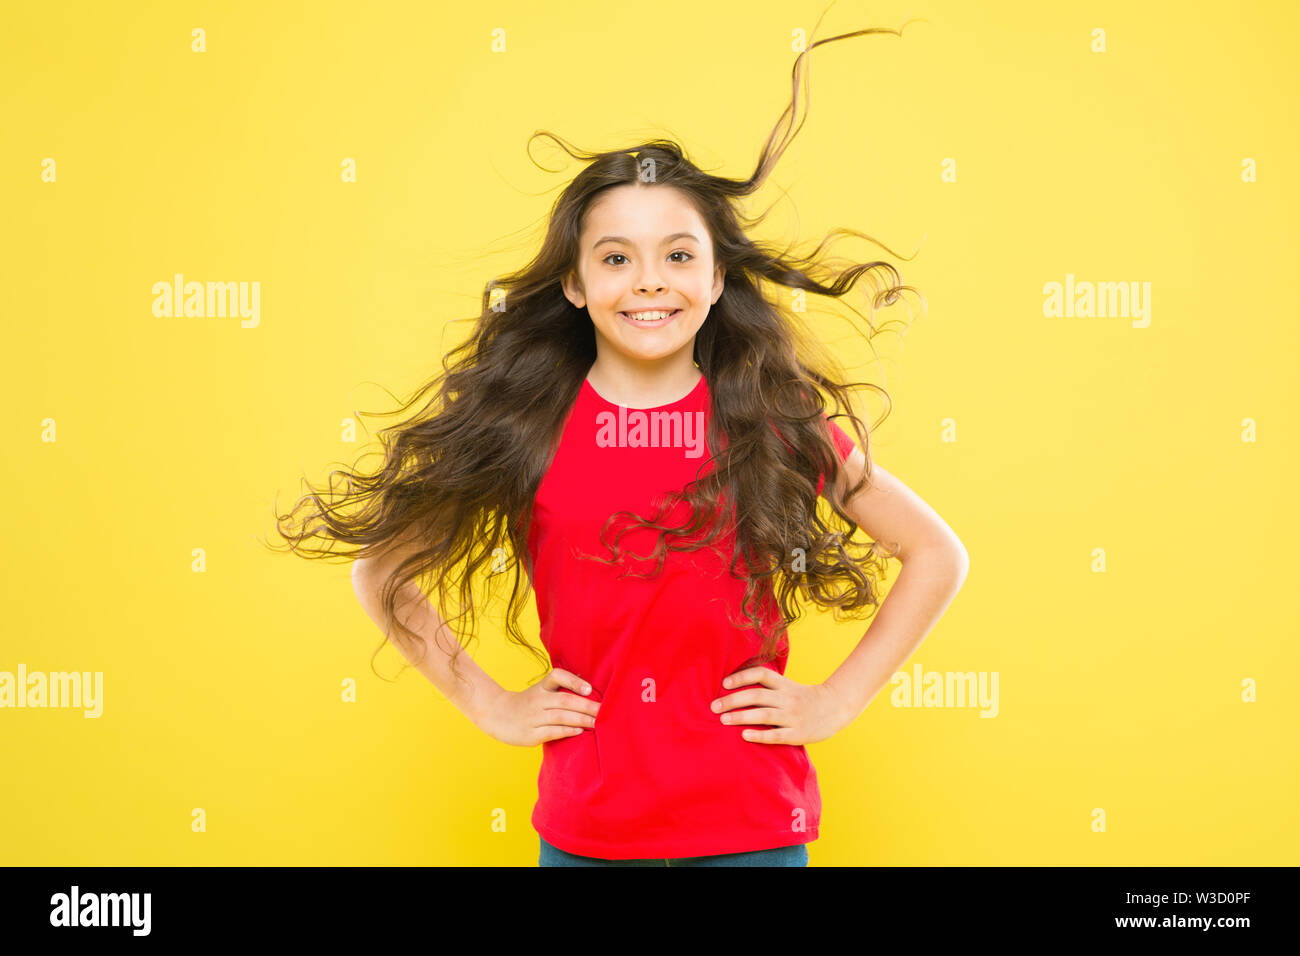 Interested in my hair and my hairdresser. Happy small girl child smiling with flowing long brunette hair on yellow background. Kids hairdresser. Hairdresser salon. - Stock Image